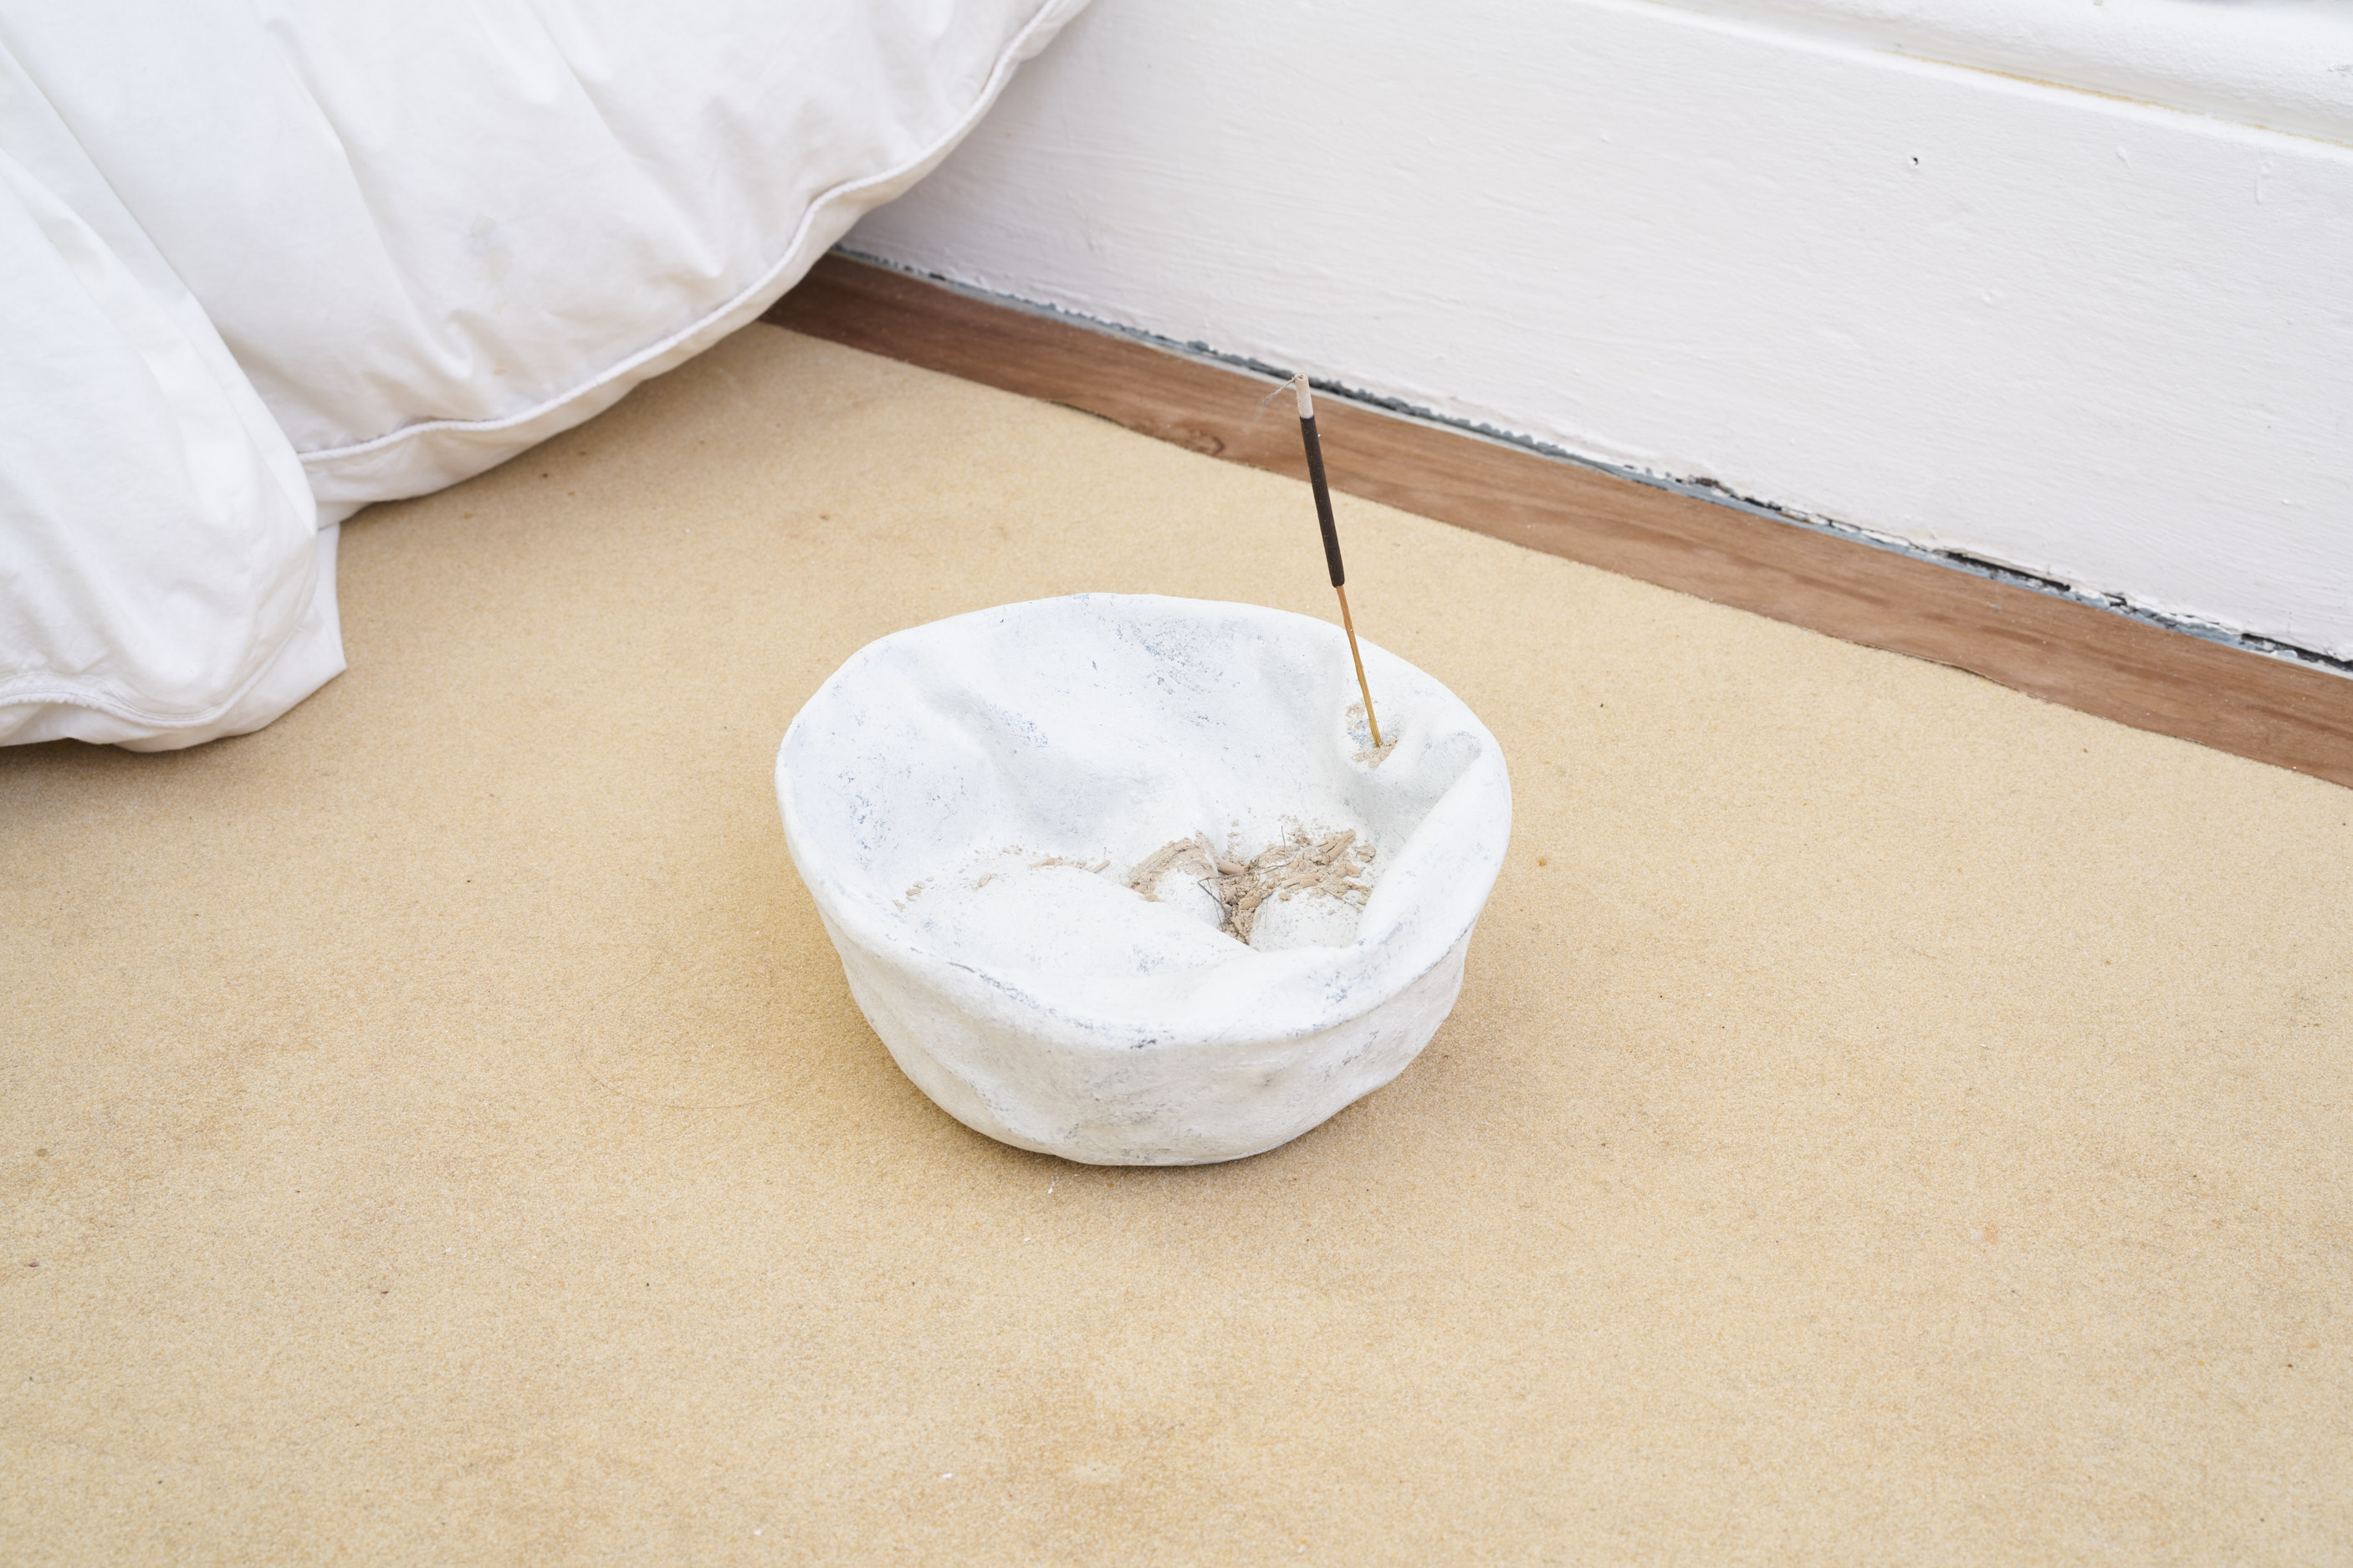 Andrea Zucchini, Microcosm, 2016. Detail. Duvet, cast bronze seeds and incense bowl. Tenderpixel.